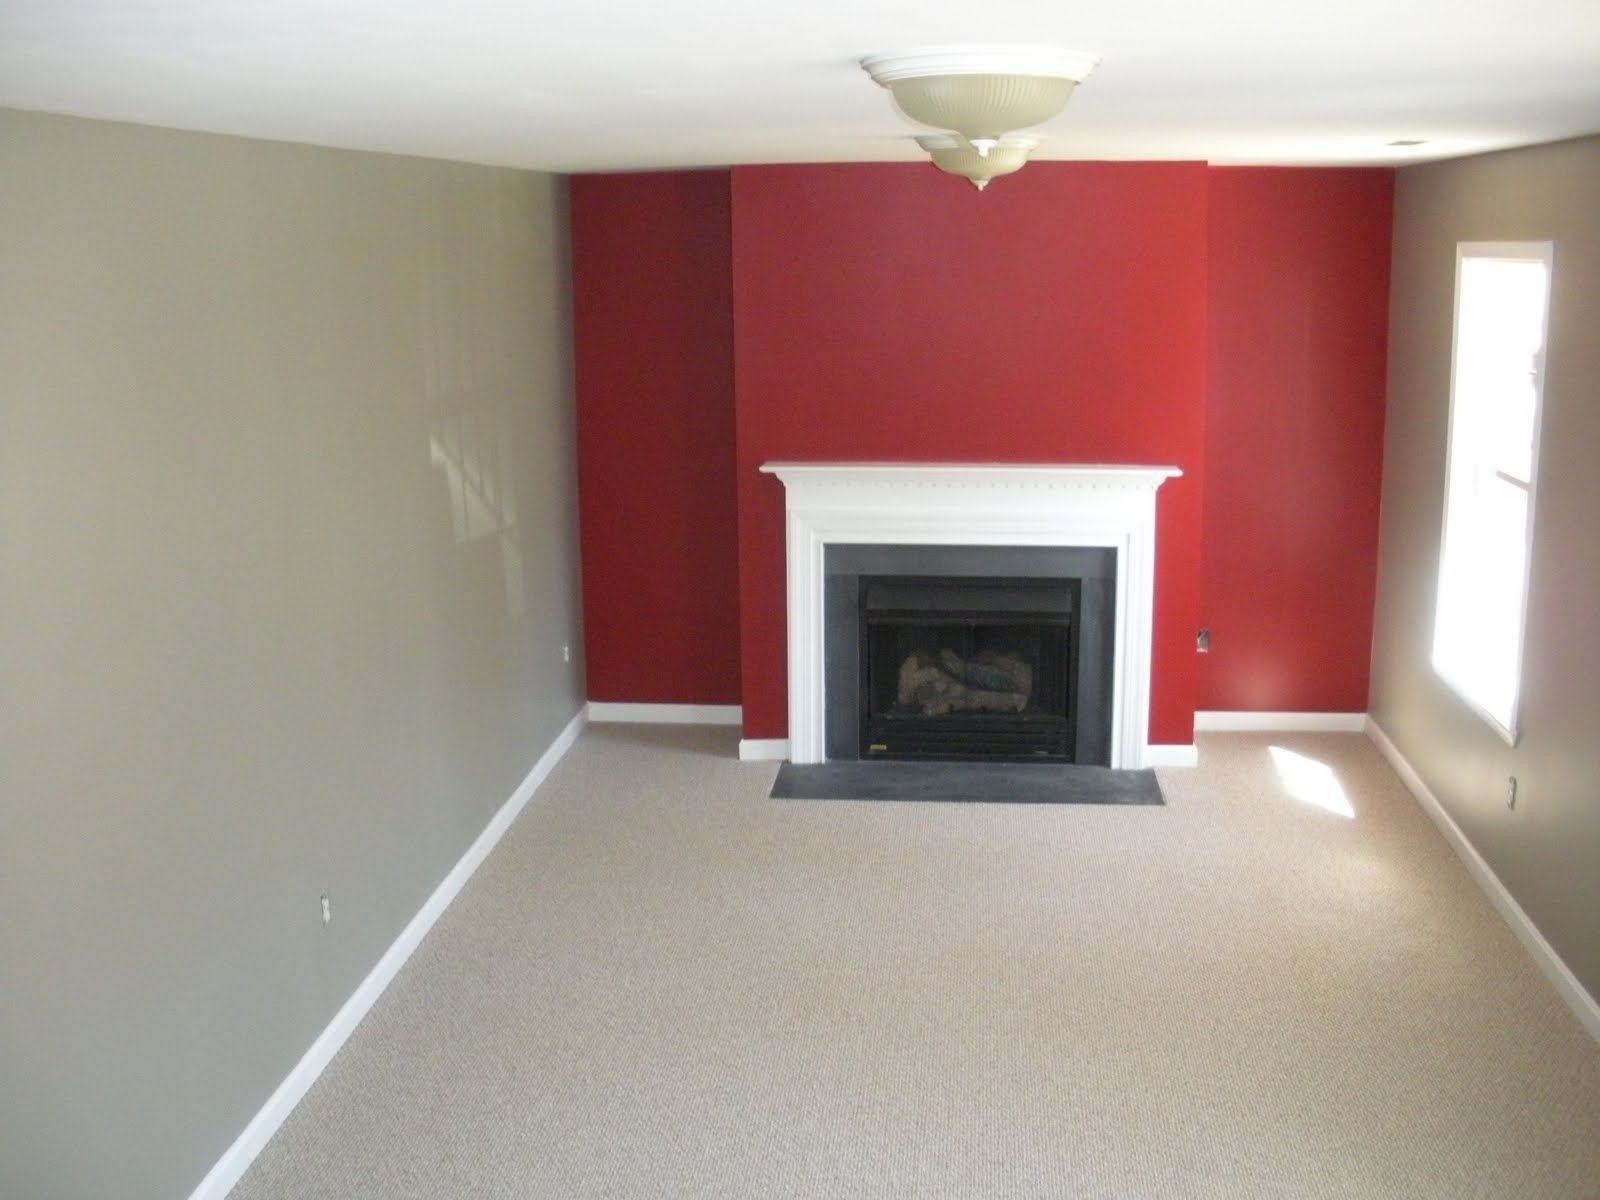 Best Red Wall As Accent In Grey Room Accent Walls Decorating 400 x 300